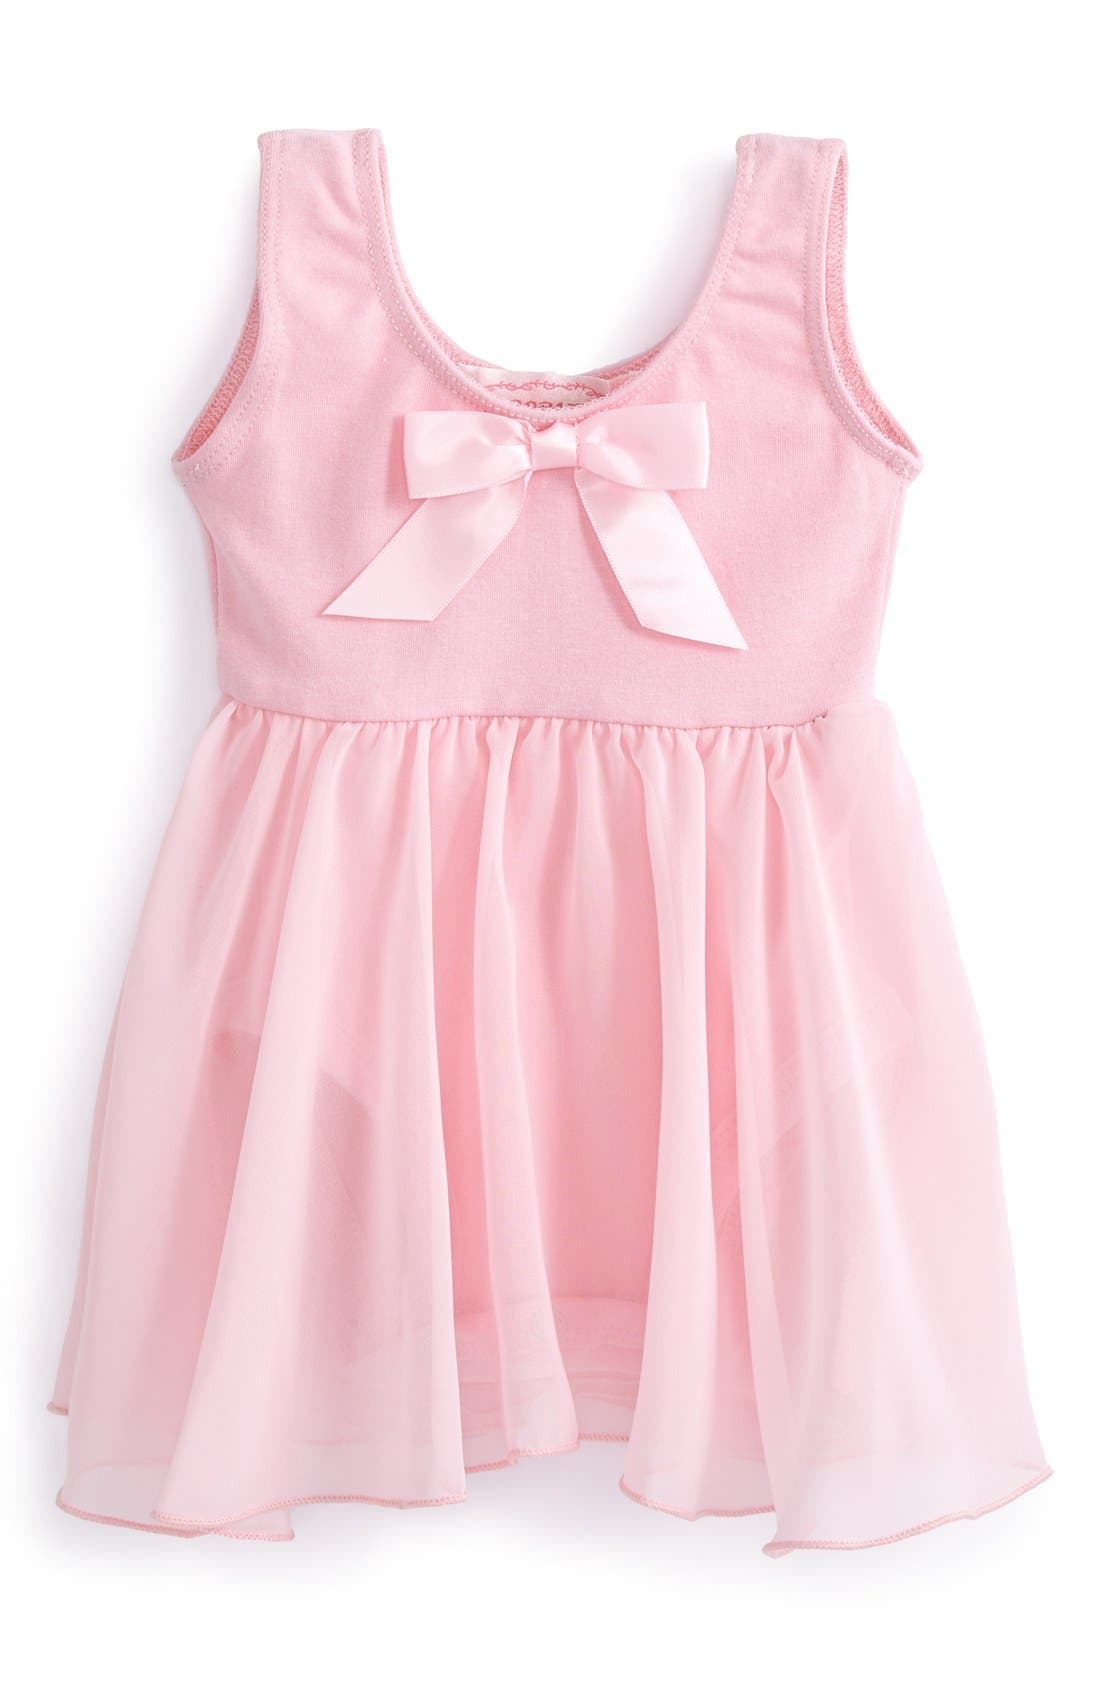 Main Image - Popatu Ballerina Dress (Baby Girls)